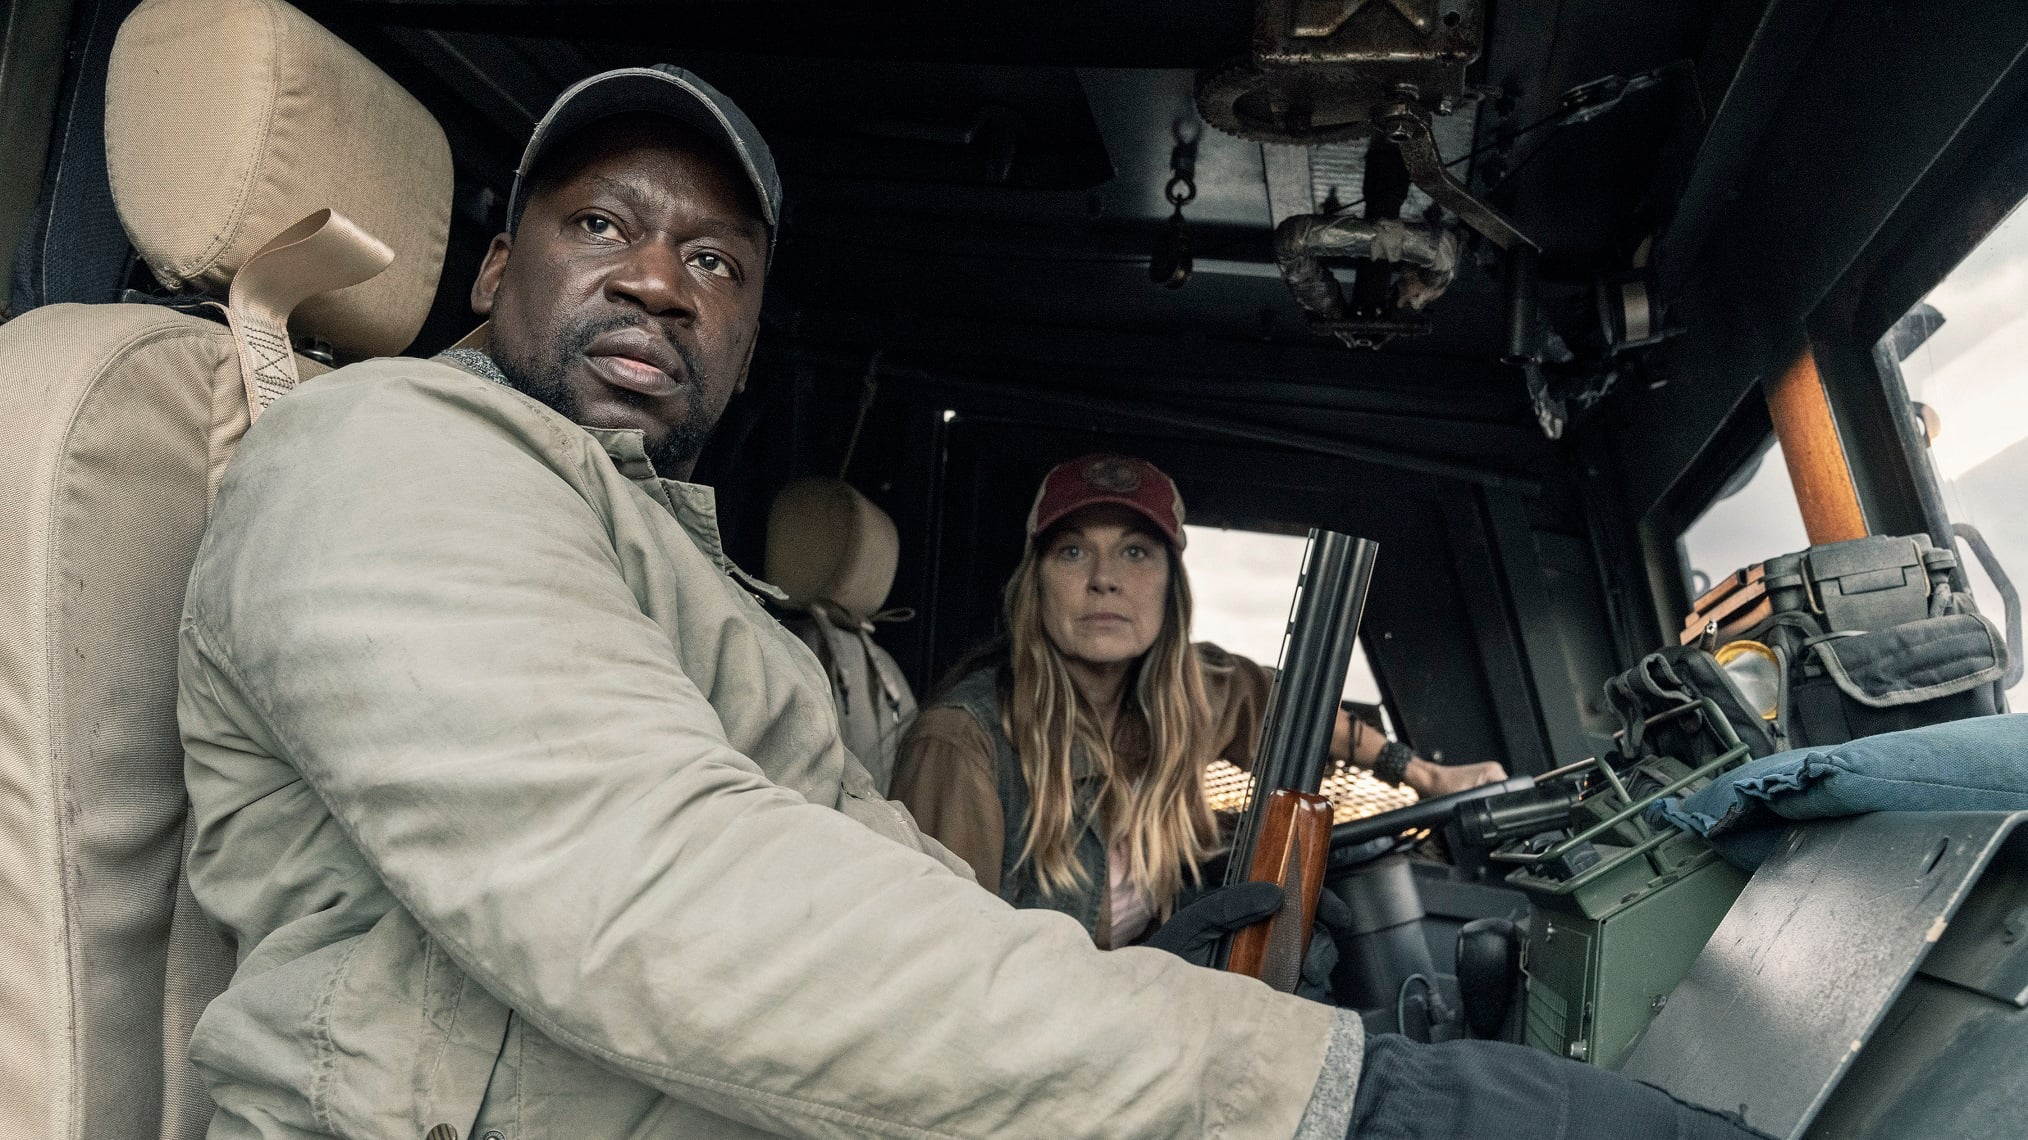 Fear the Walking Dead - Season 5 Episode 4 : Skidmark